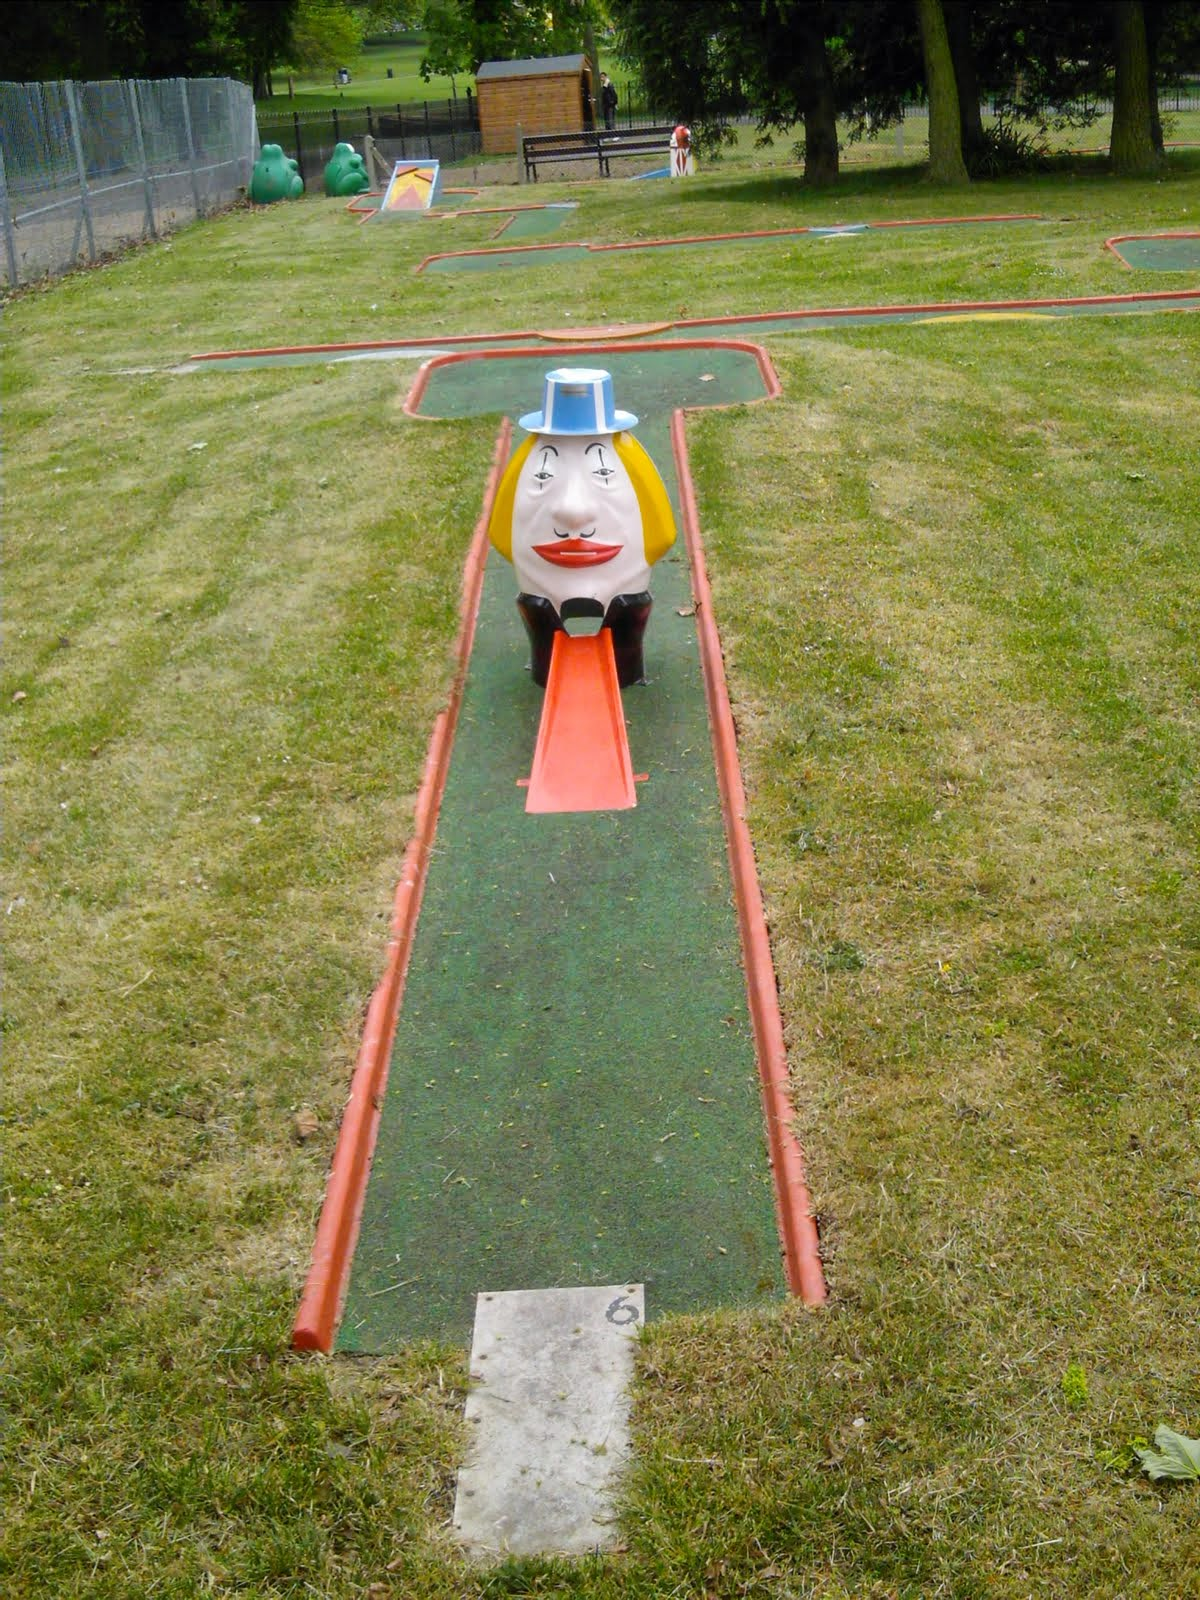 Hole 6 of the Crazy Golf course in Luton's Wardown Park in May 2007